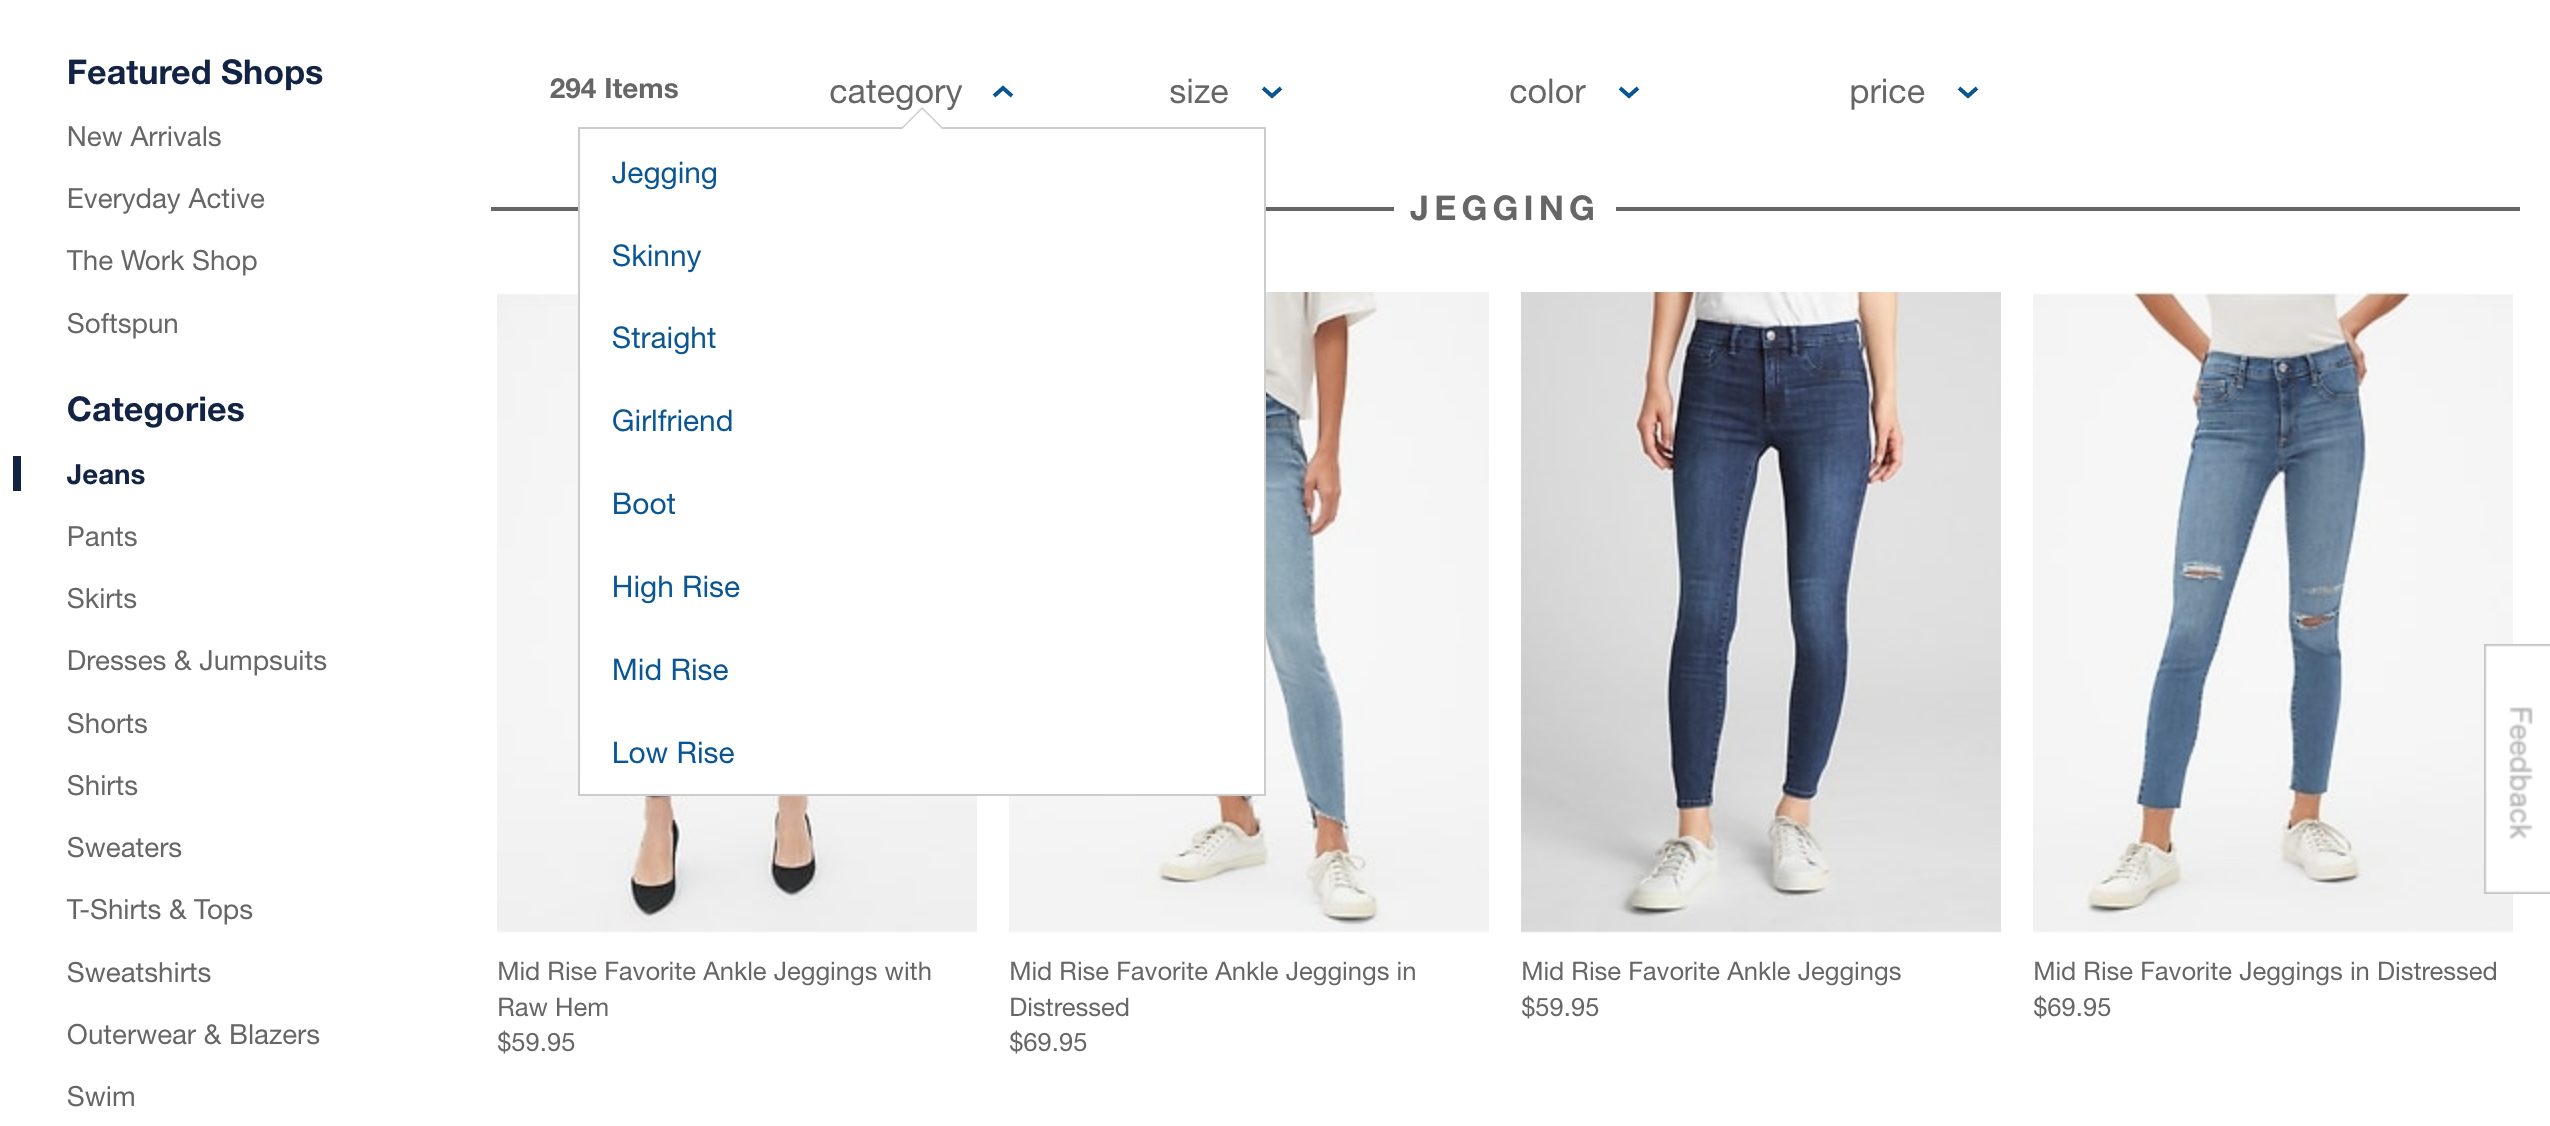 GAP listings filters left and top